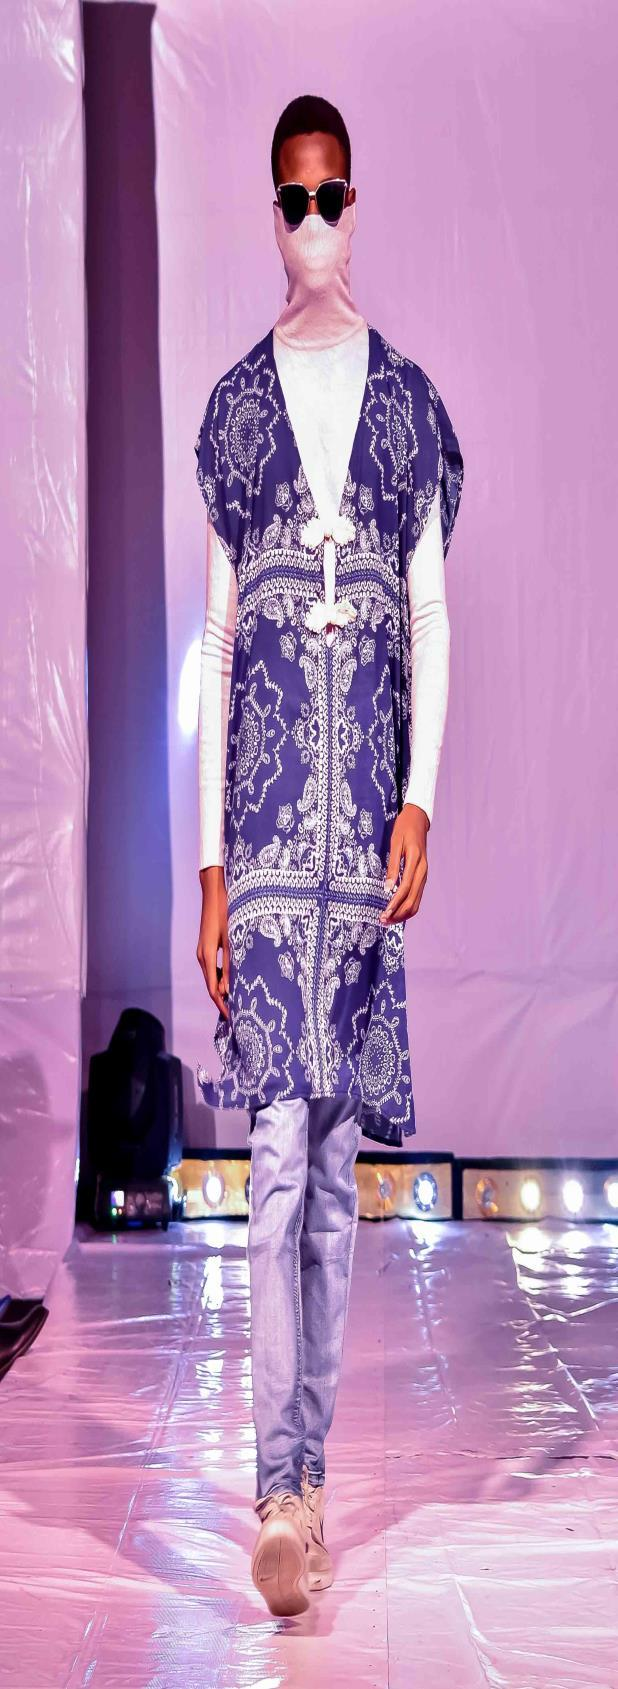 ABOUT THE LAGOS URBAN FASHION SHOW (LUFS) The Lagos Urban Fashion Show (LUFS) is one of the highest profile fashion events in Nigeria and is the first street wear themed fashion show in Africa.